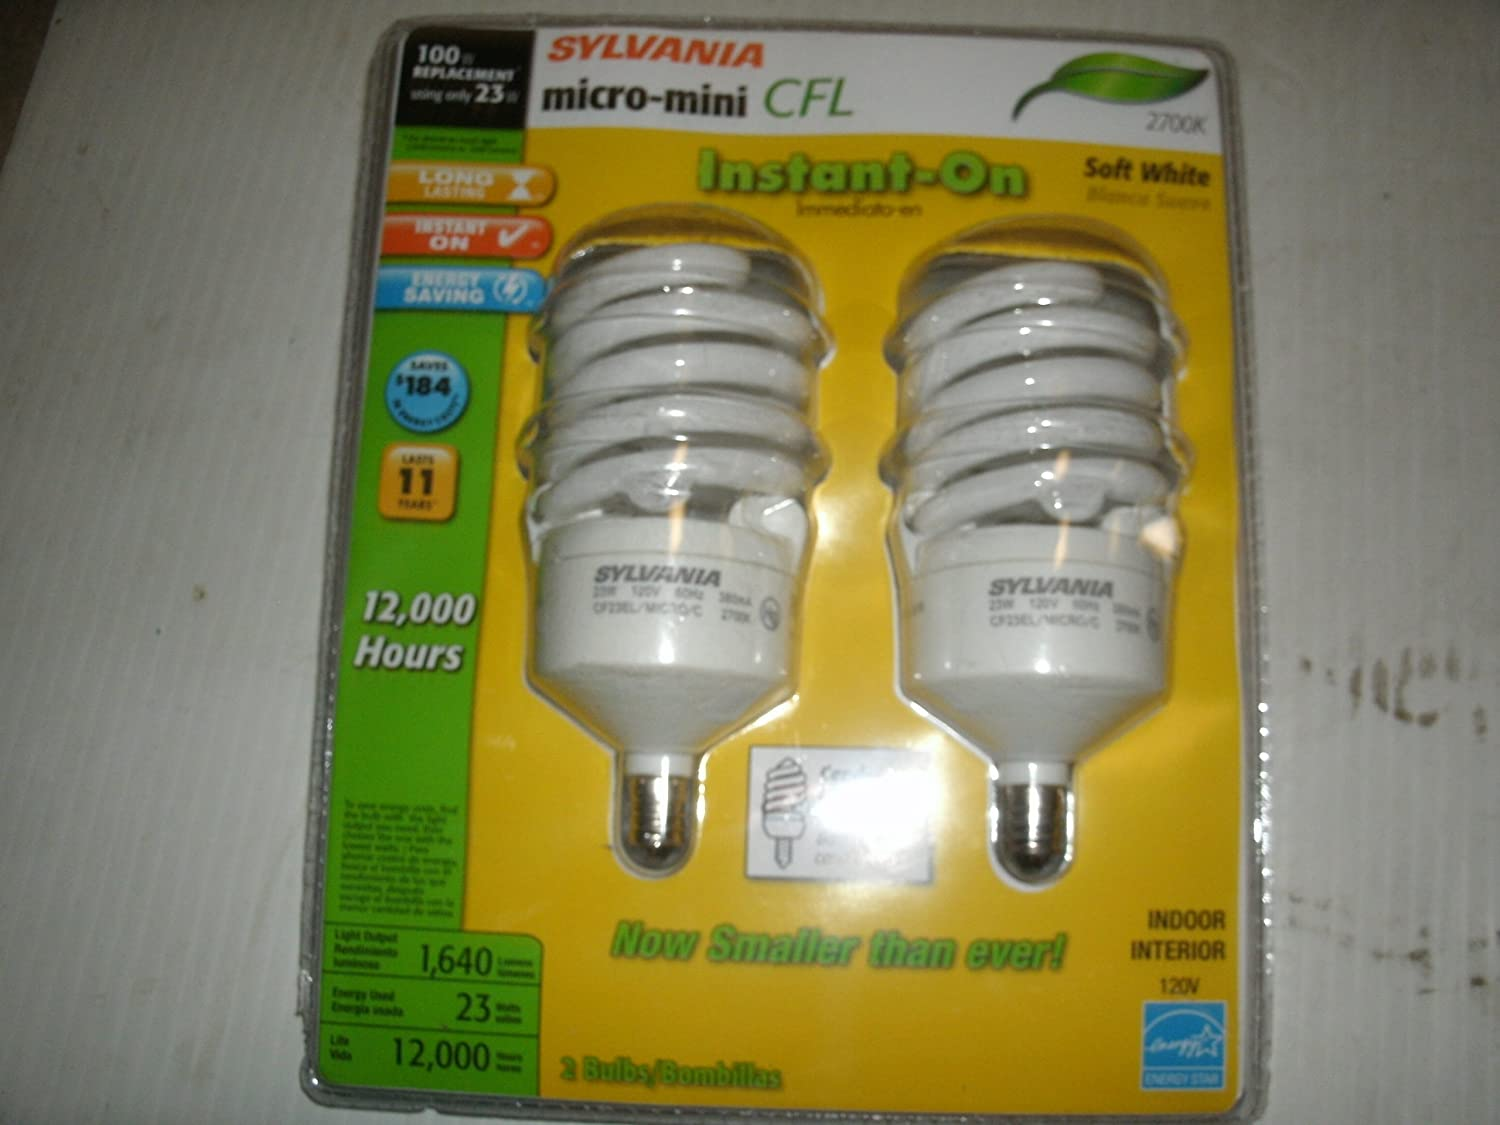 Sylvania 2 pack 23 watt 100w spiral candelabra base soft white sylvania 2 pack 23 watt 100w spiral candelabra base soft white 2700k cfl bulbs item89927 model26904 upc 046135269066 compact fluorescent bulbs arubaitofo Image collections